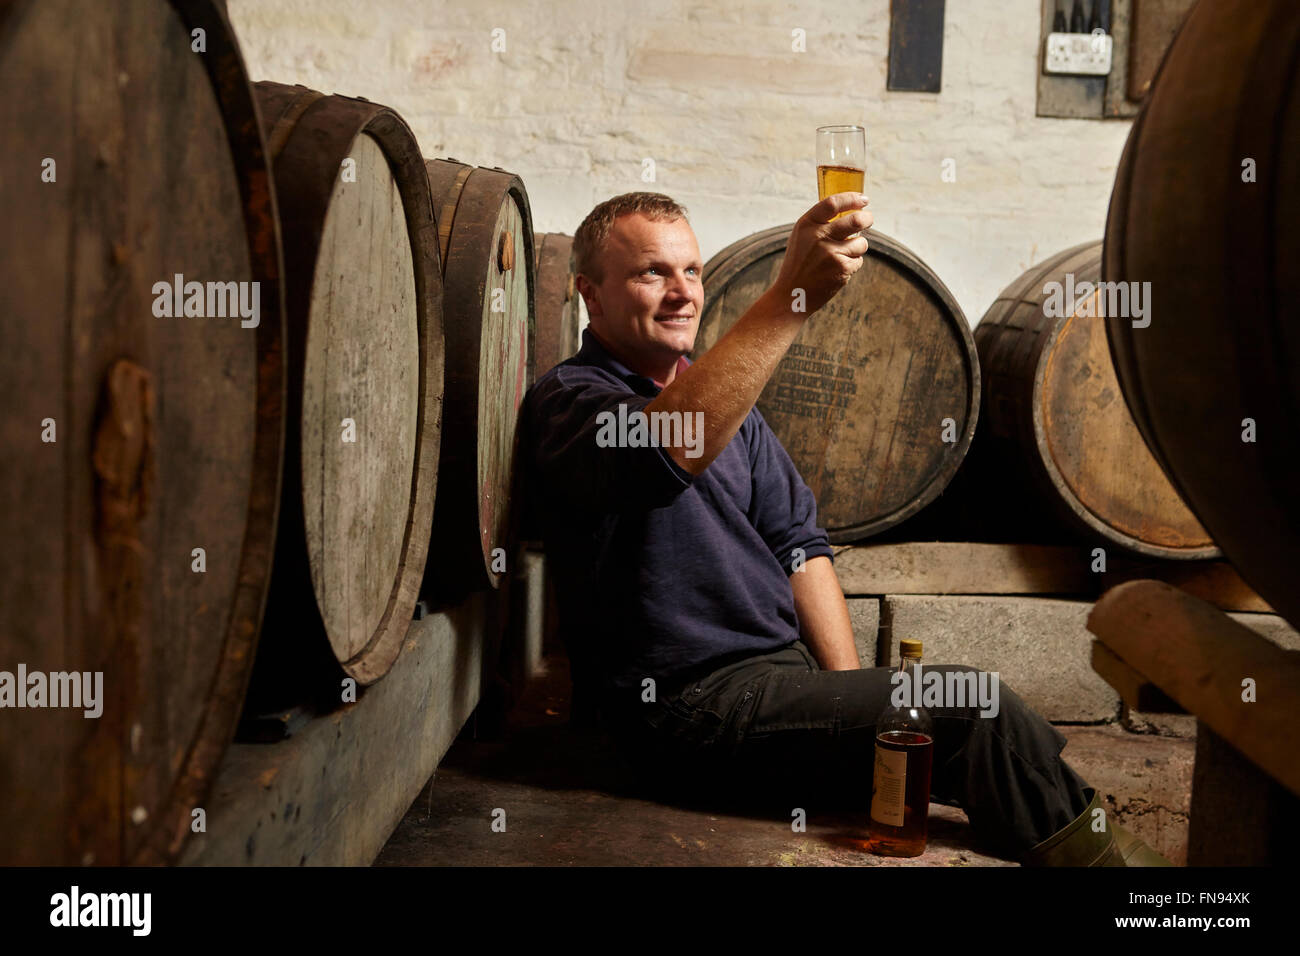 A man sitting among oak barrels at a cider makers, raising a glass and tasting the brew. - Stock Image